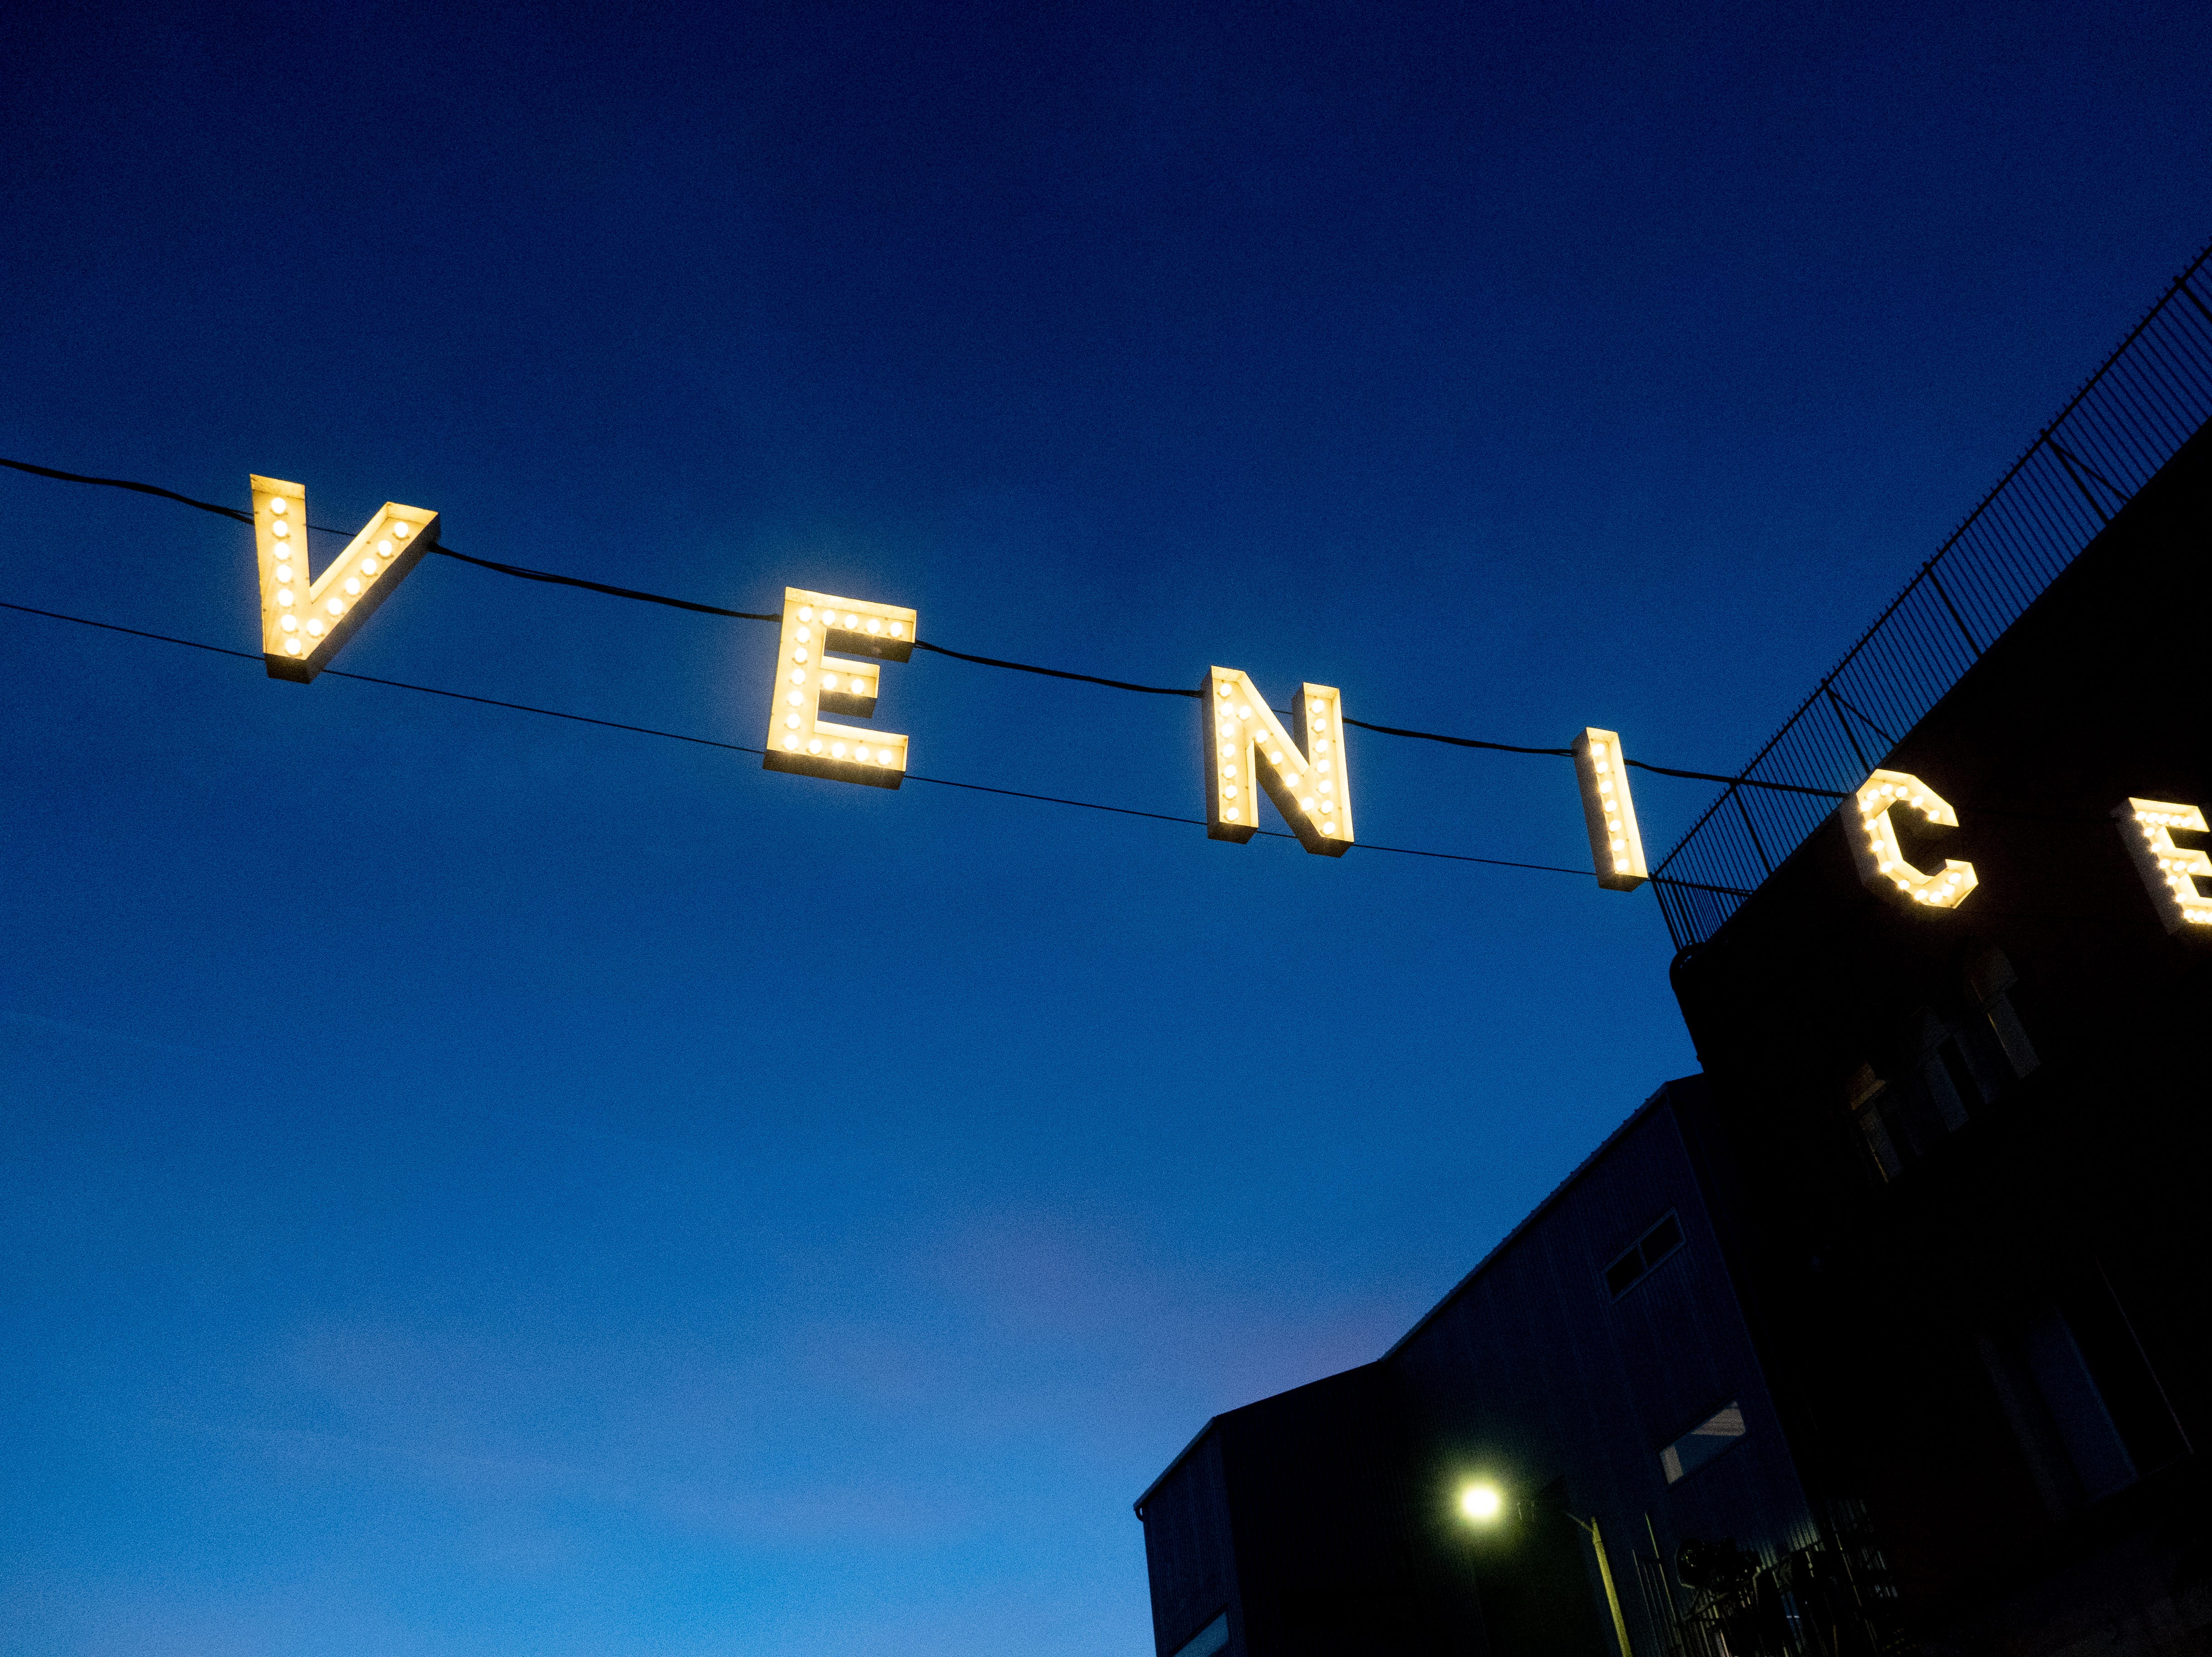 The Venice sign in Venice Beach, California.